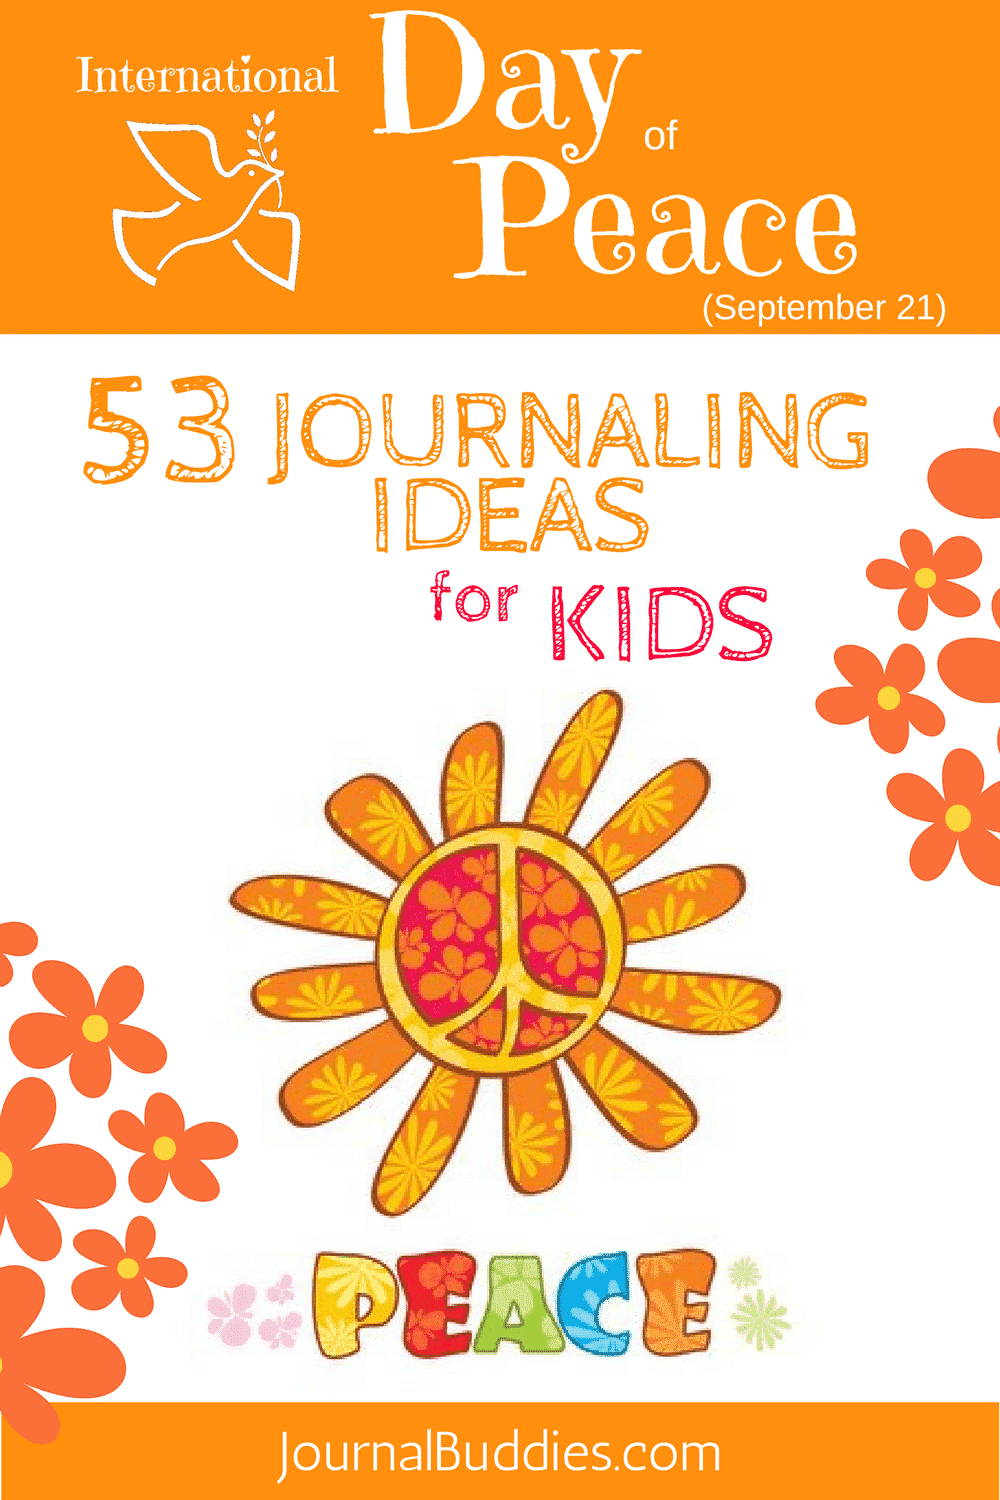 Encourage your students to develop their opinions and work for their beliefs with these Peace Day journal prompts and writing prompt ideas. They'll be inspired by the opportunity to think about how they can make a difference in the world.